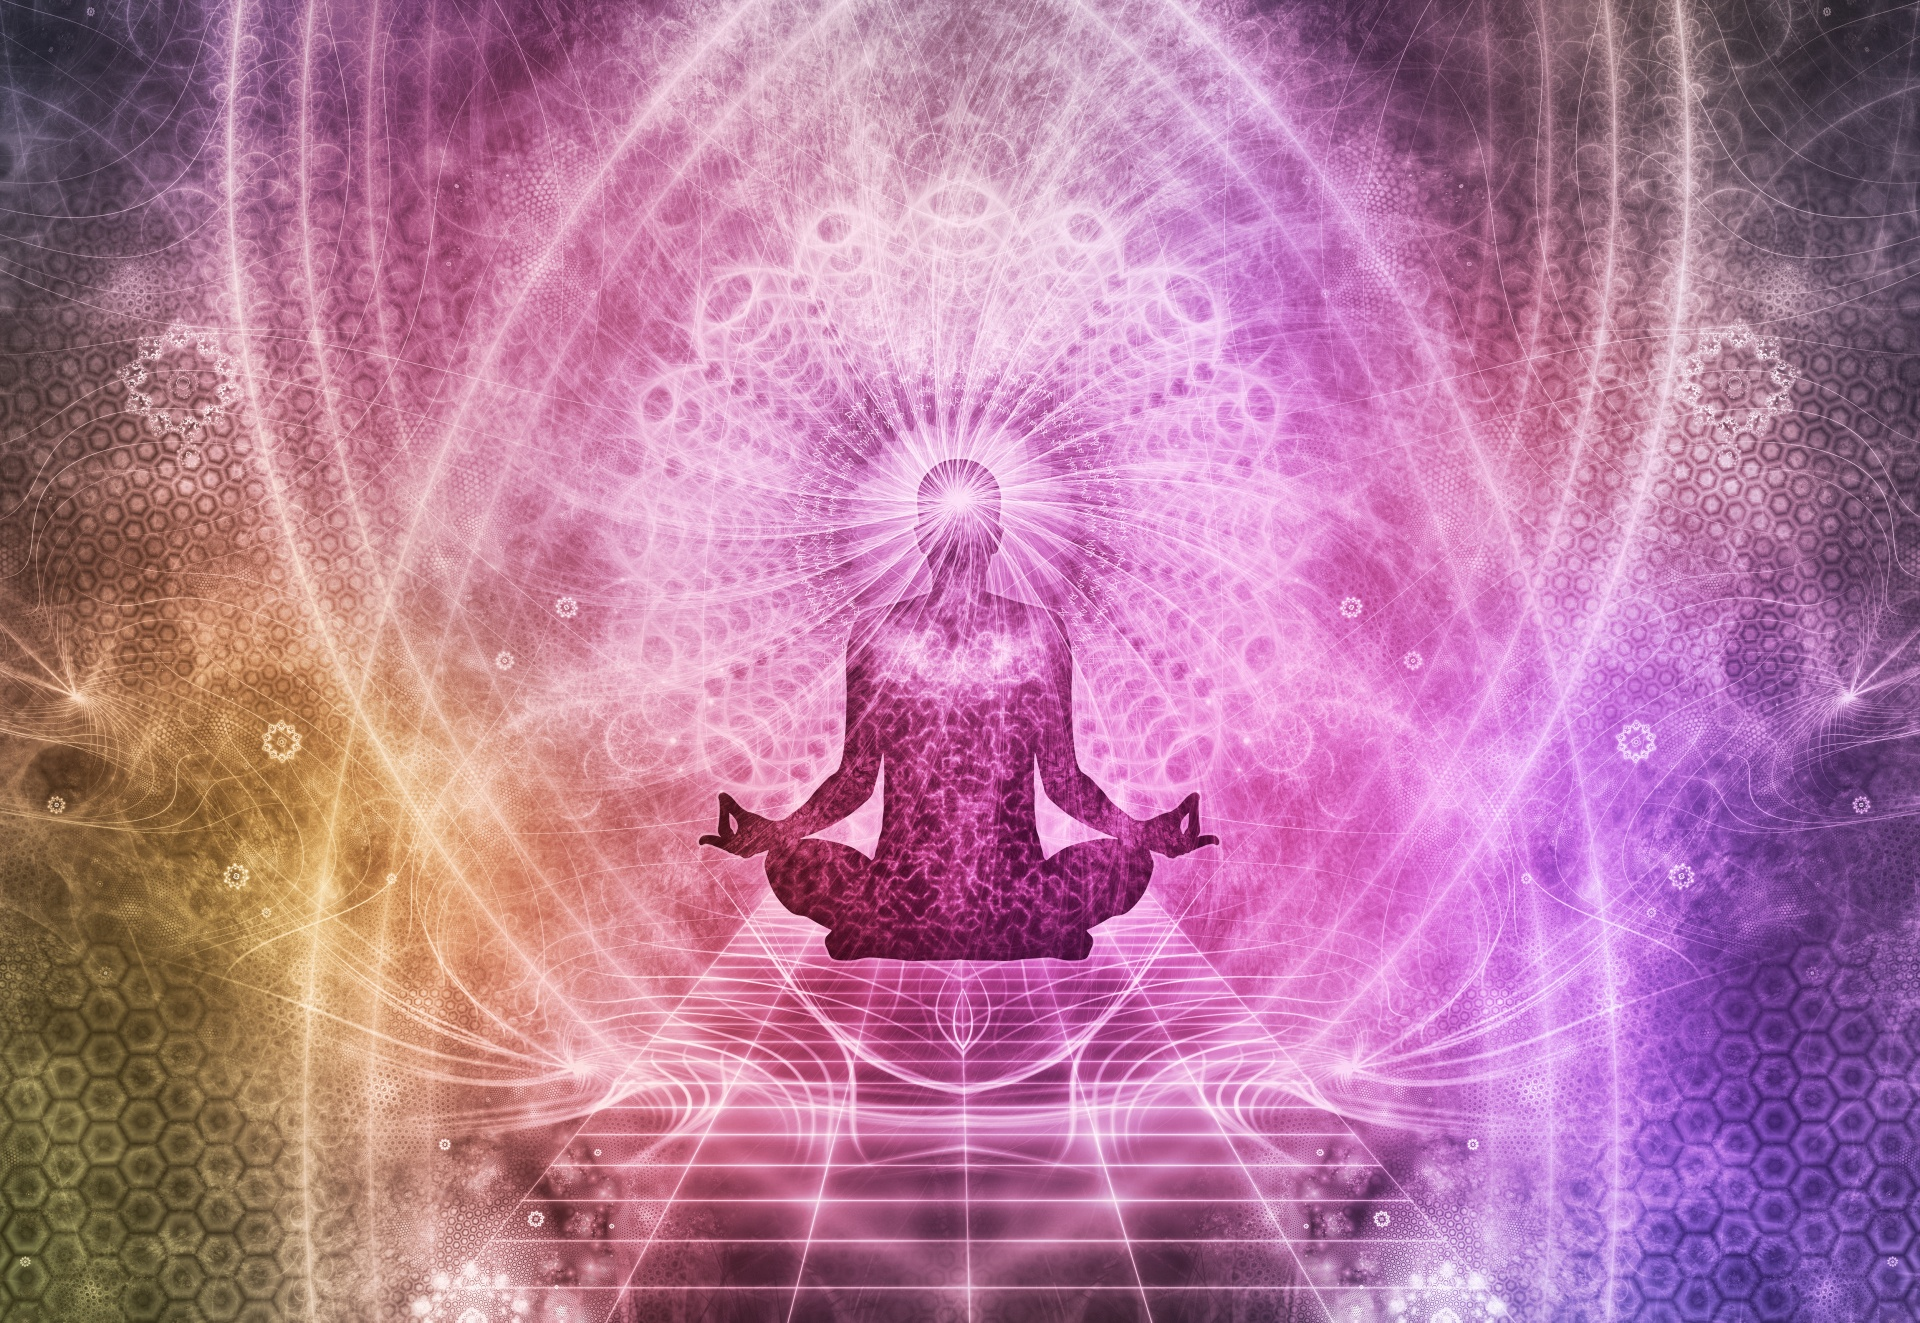 ascension-symptoms-abstract-colorful-cosmic-image-meditating-figure-lotus-position-pink-lights-ascension.jpg